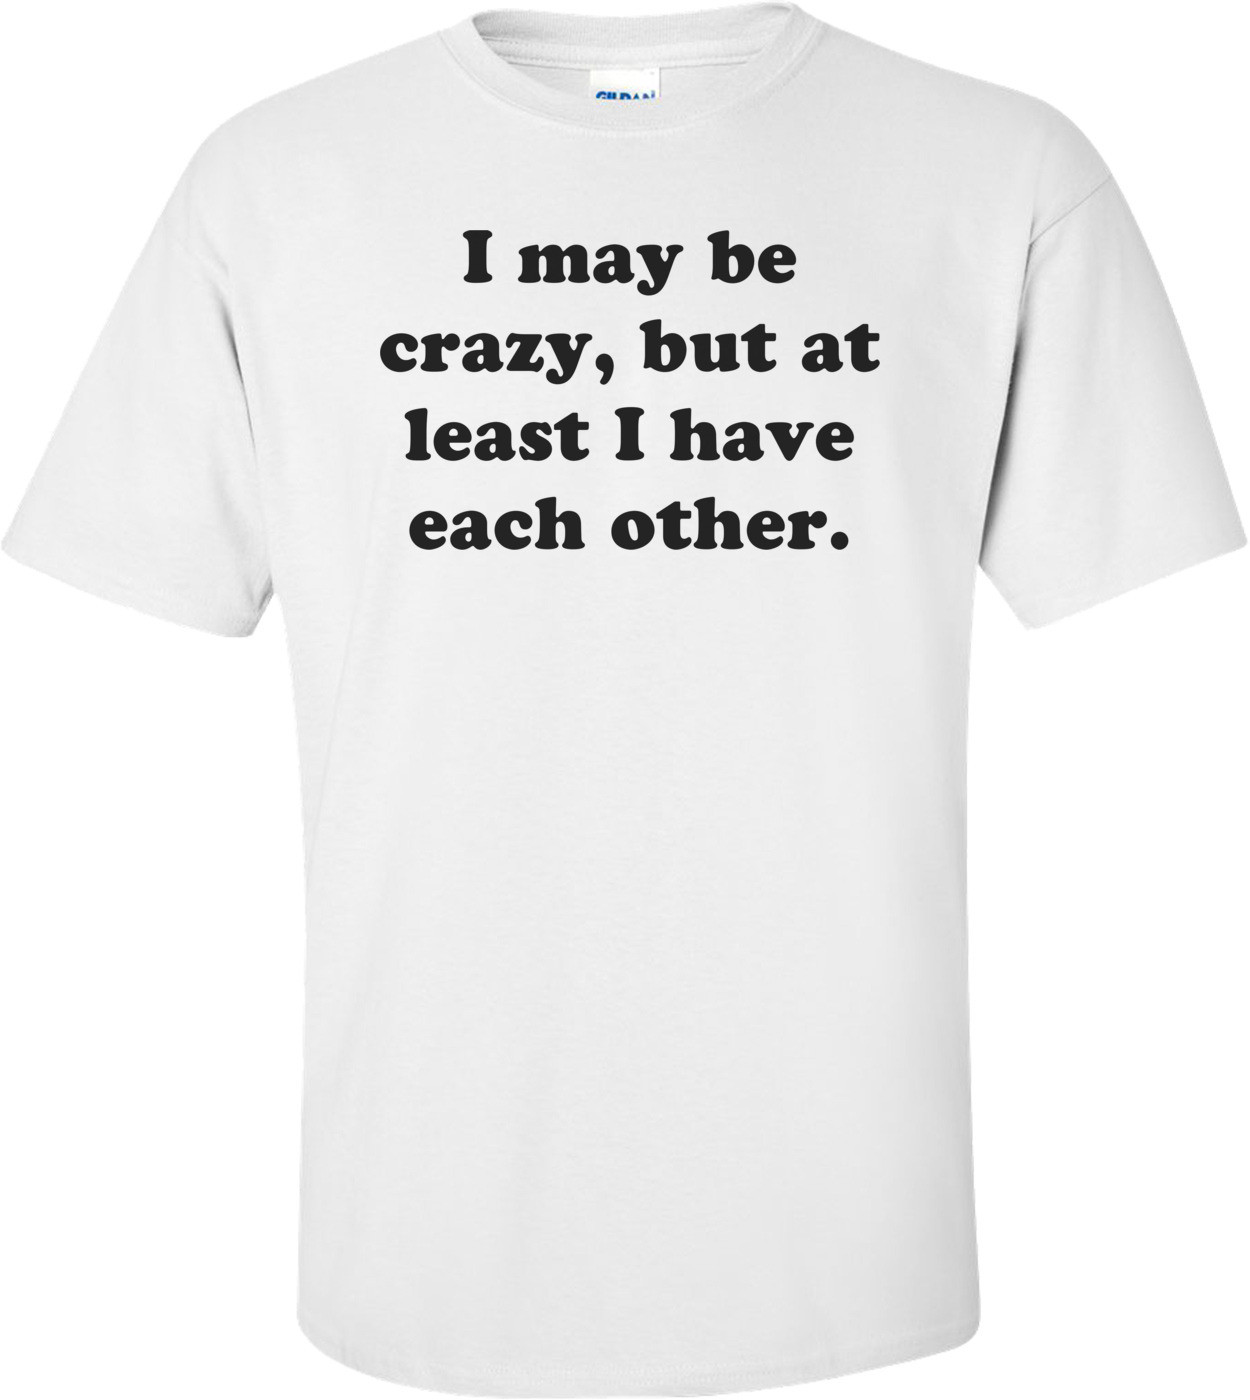 I may be crazy, but at least I have each other. Shirt